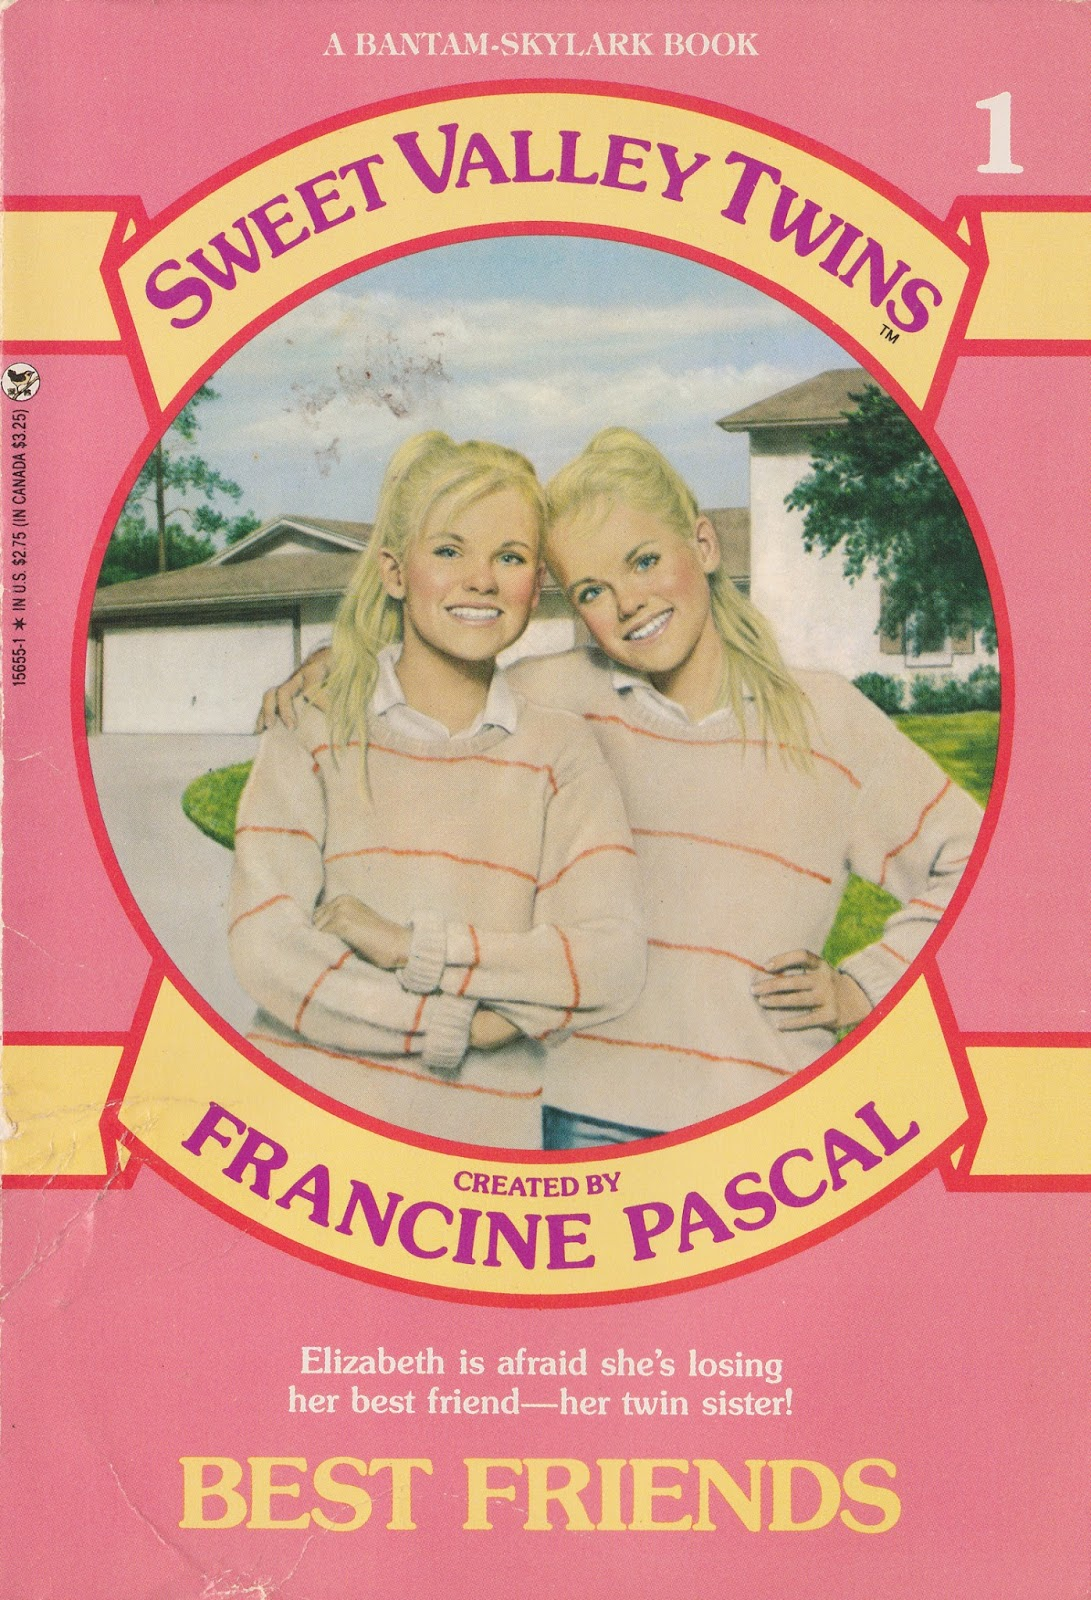 https://www.goodreads.com/series/42362-sweet-valley-twins